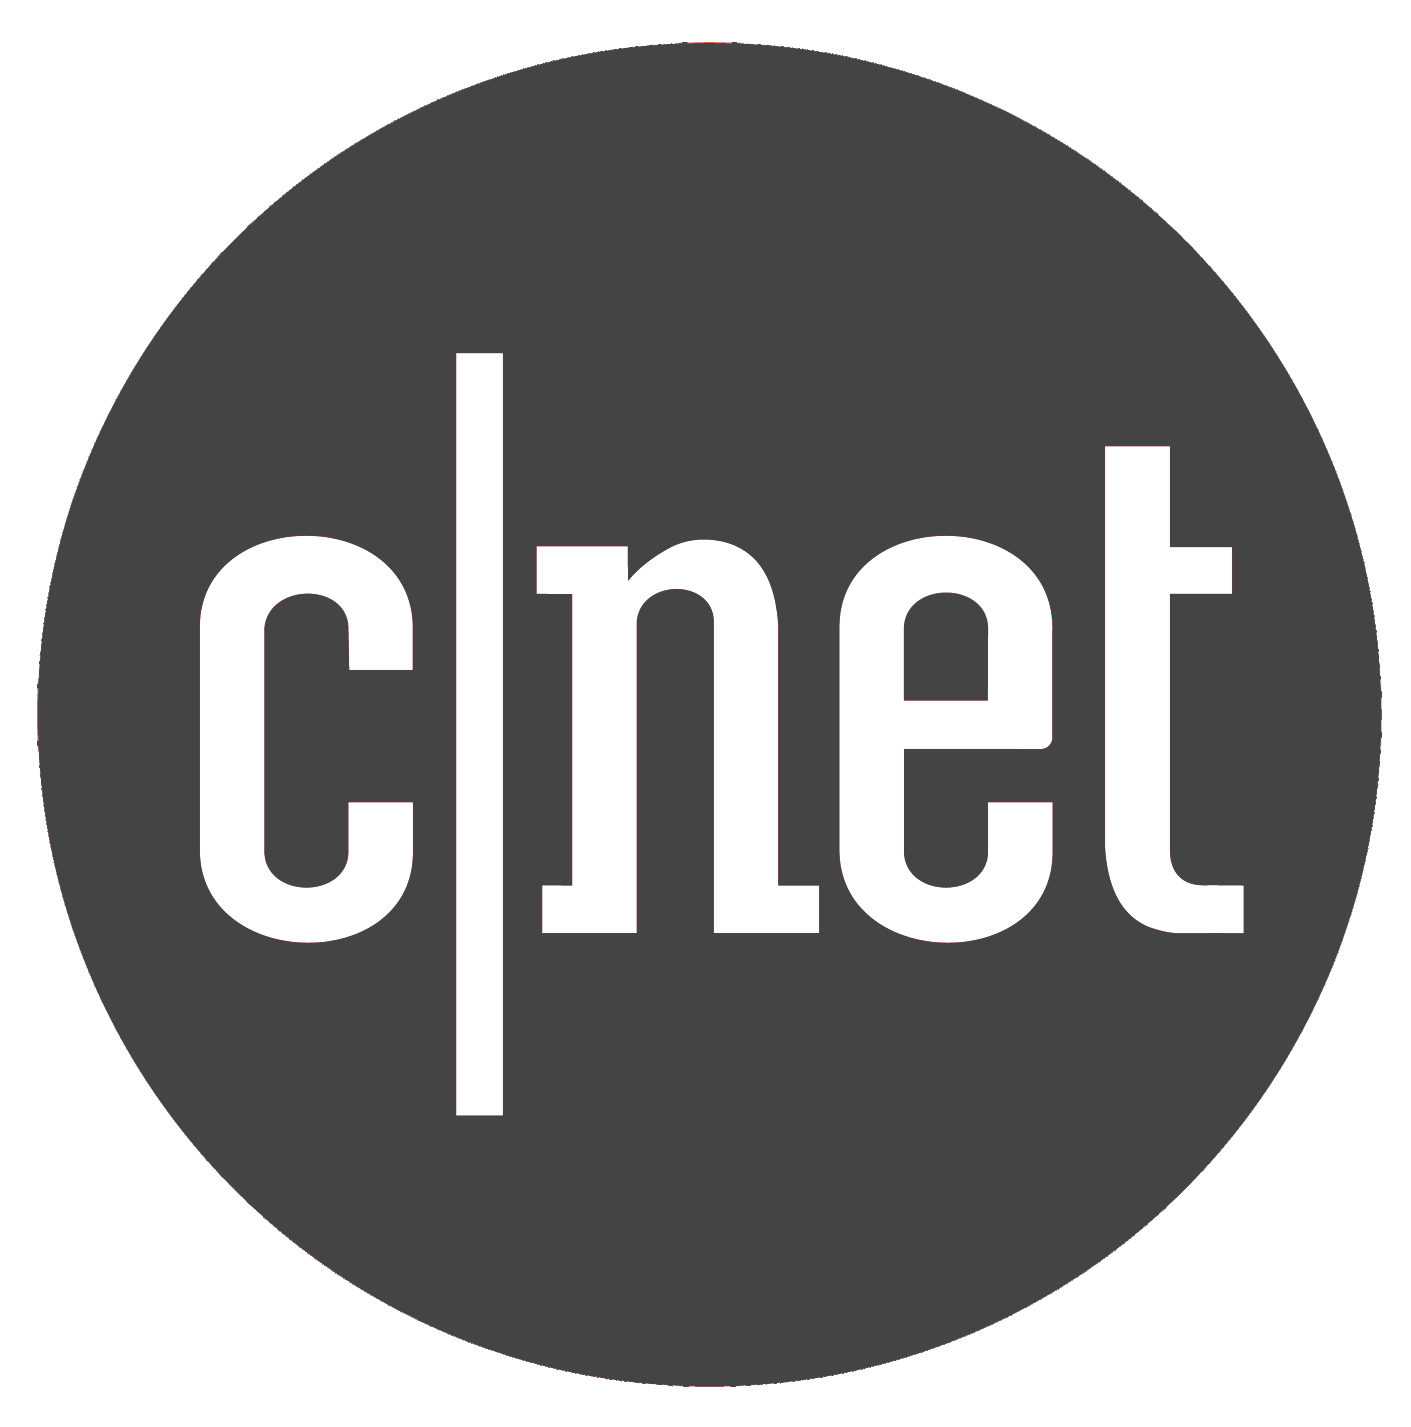 Cnet-logo-Pentagram_copy.png